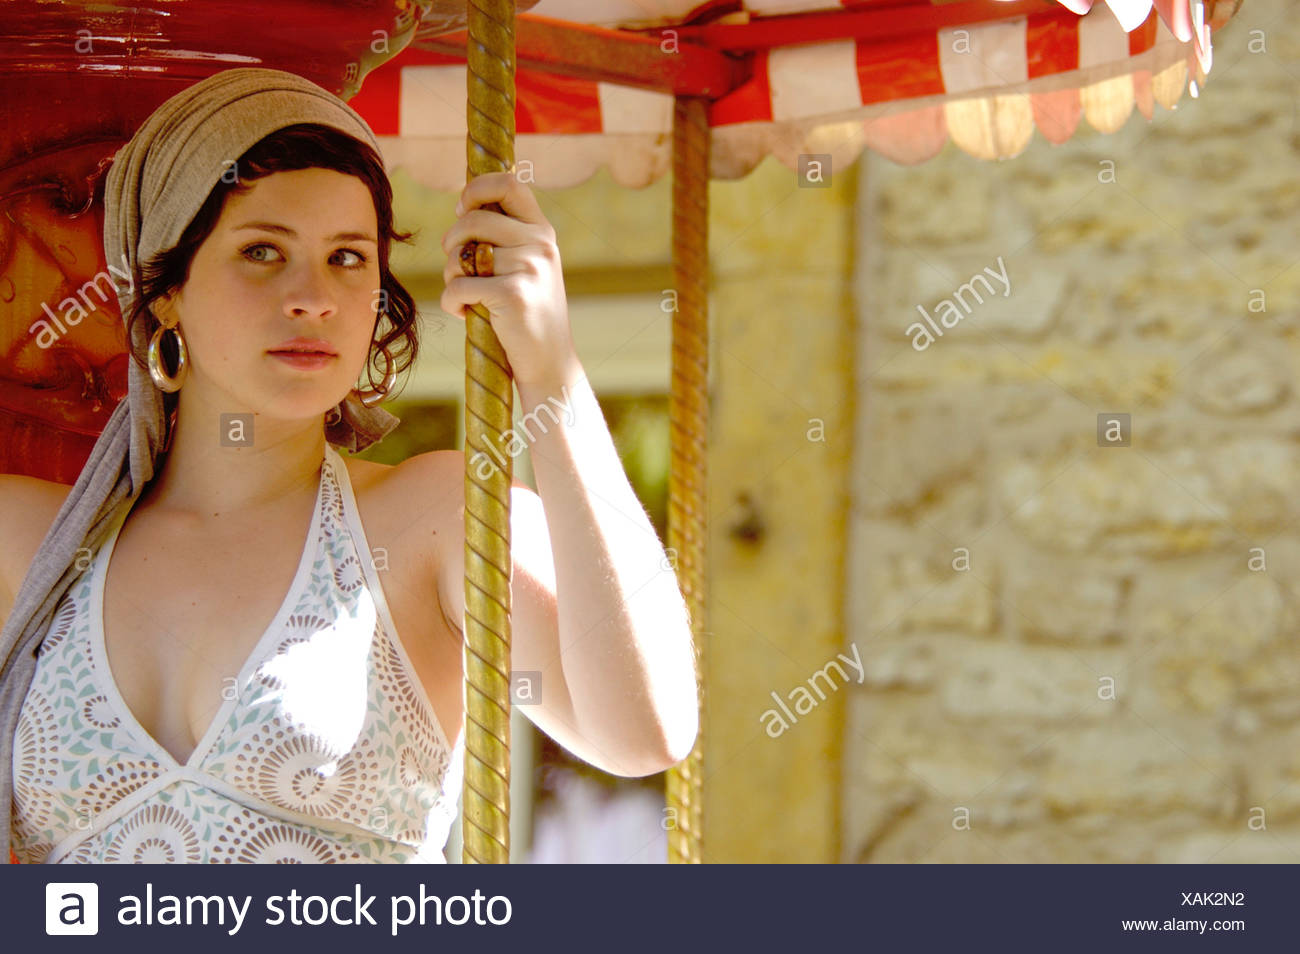 young women on a merry-go-round , Germany - Stock Image